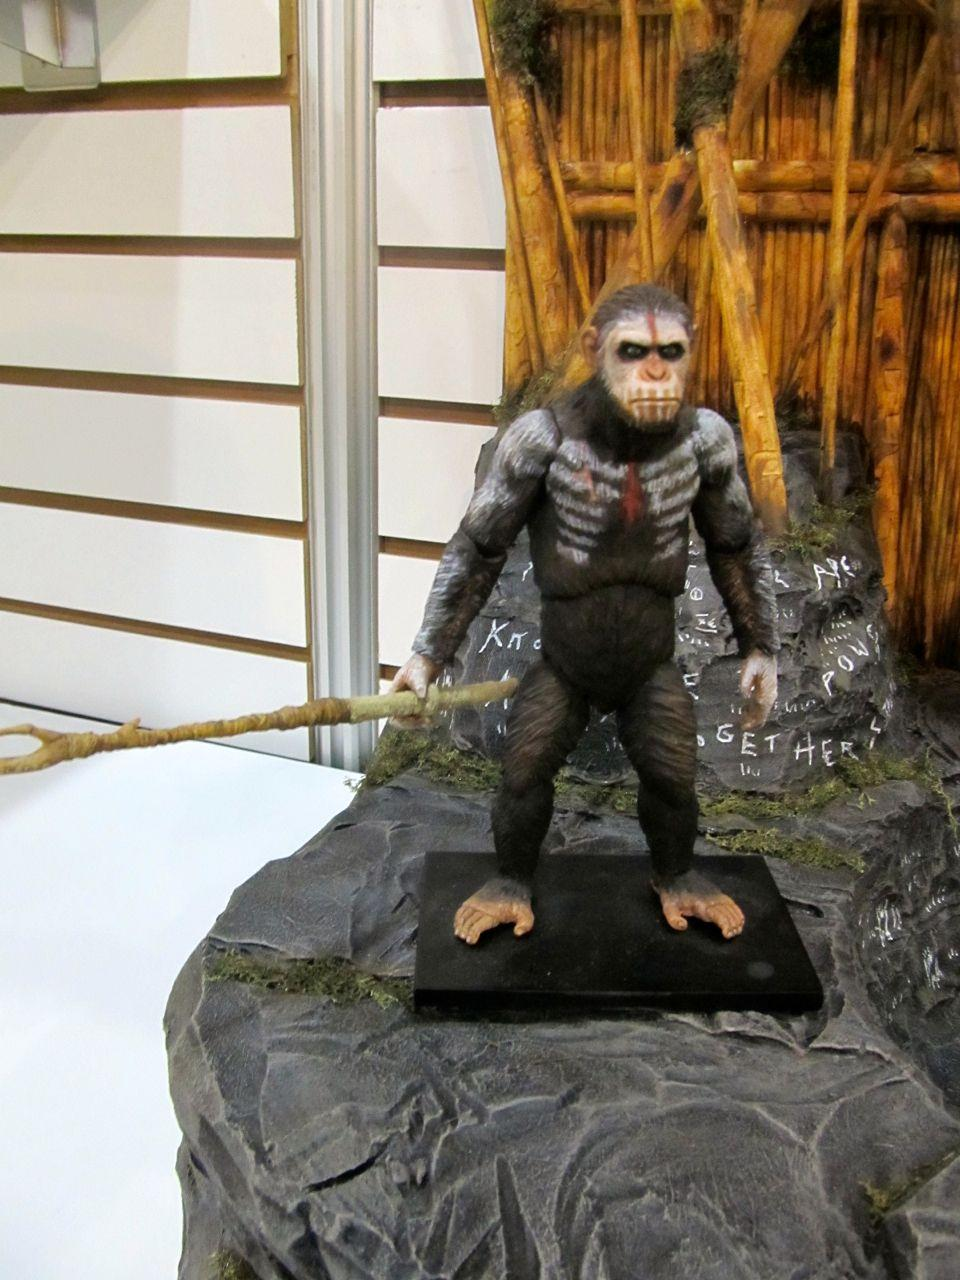 hr_neca_dawn_of_the_planet_of_the_apes_1